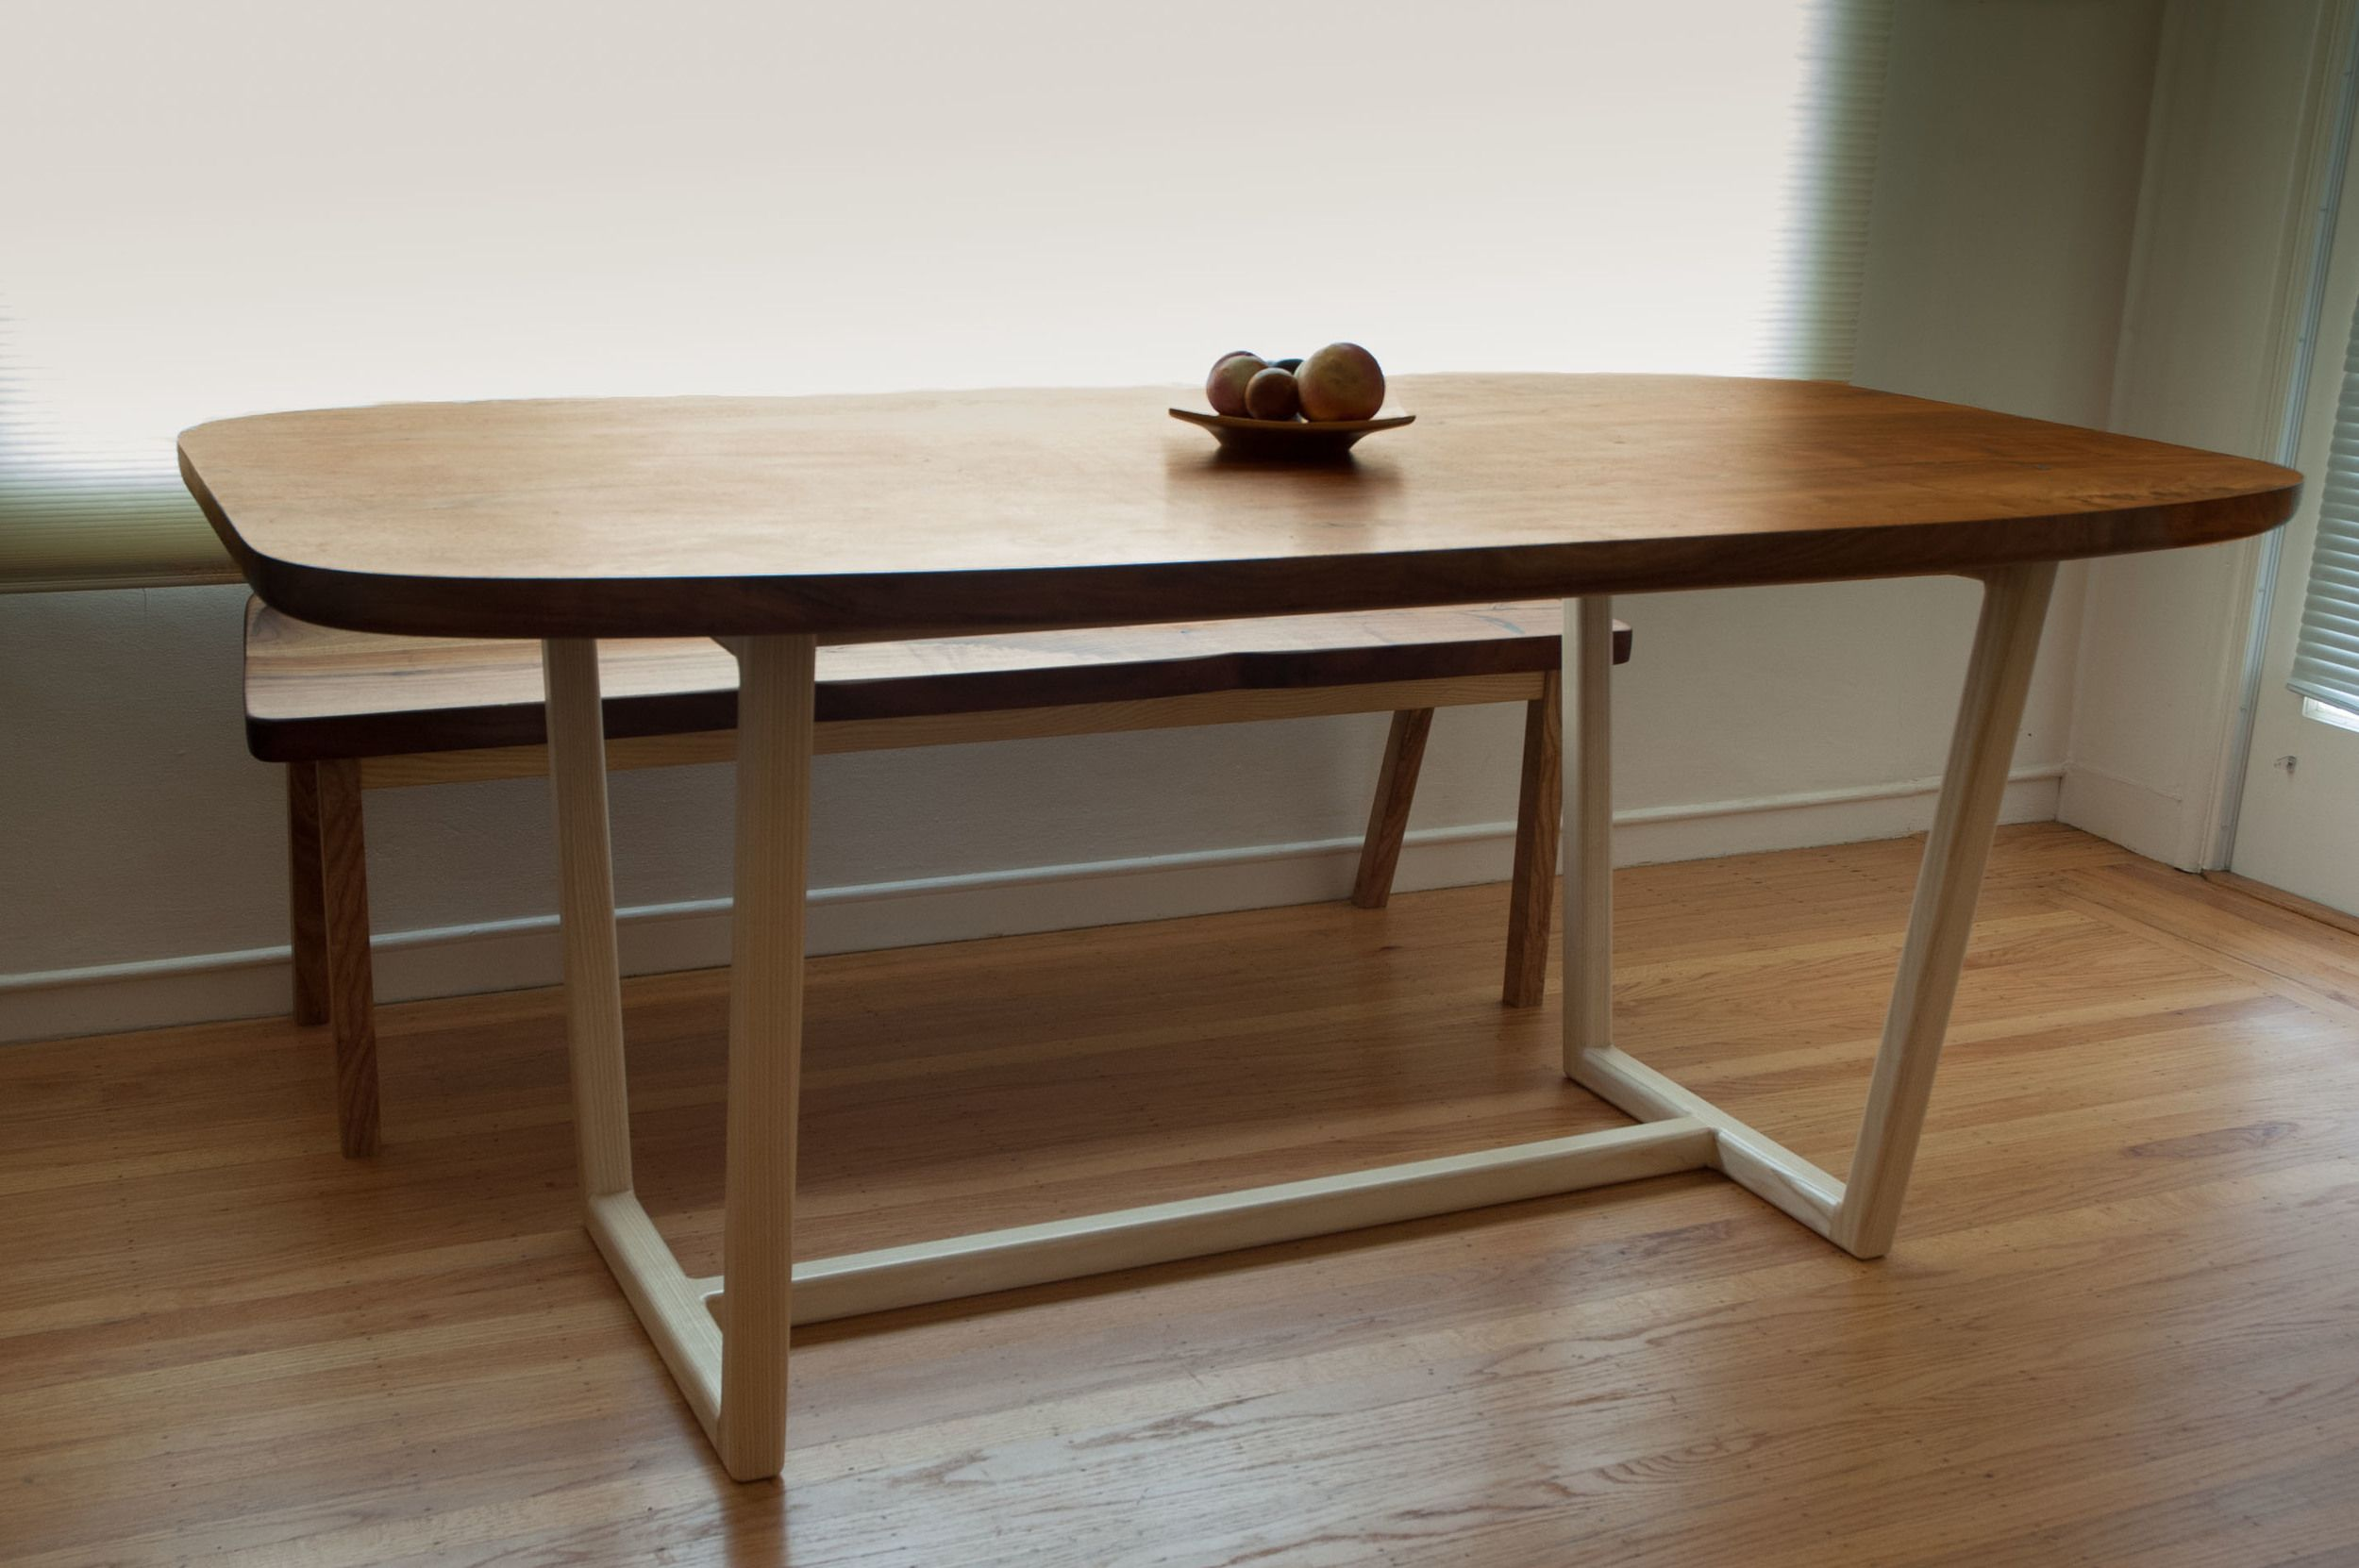 Kitchen table benches  MidCentury Modern Dining Table and Bench  Kitchen  Pinterest